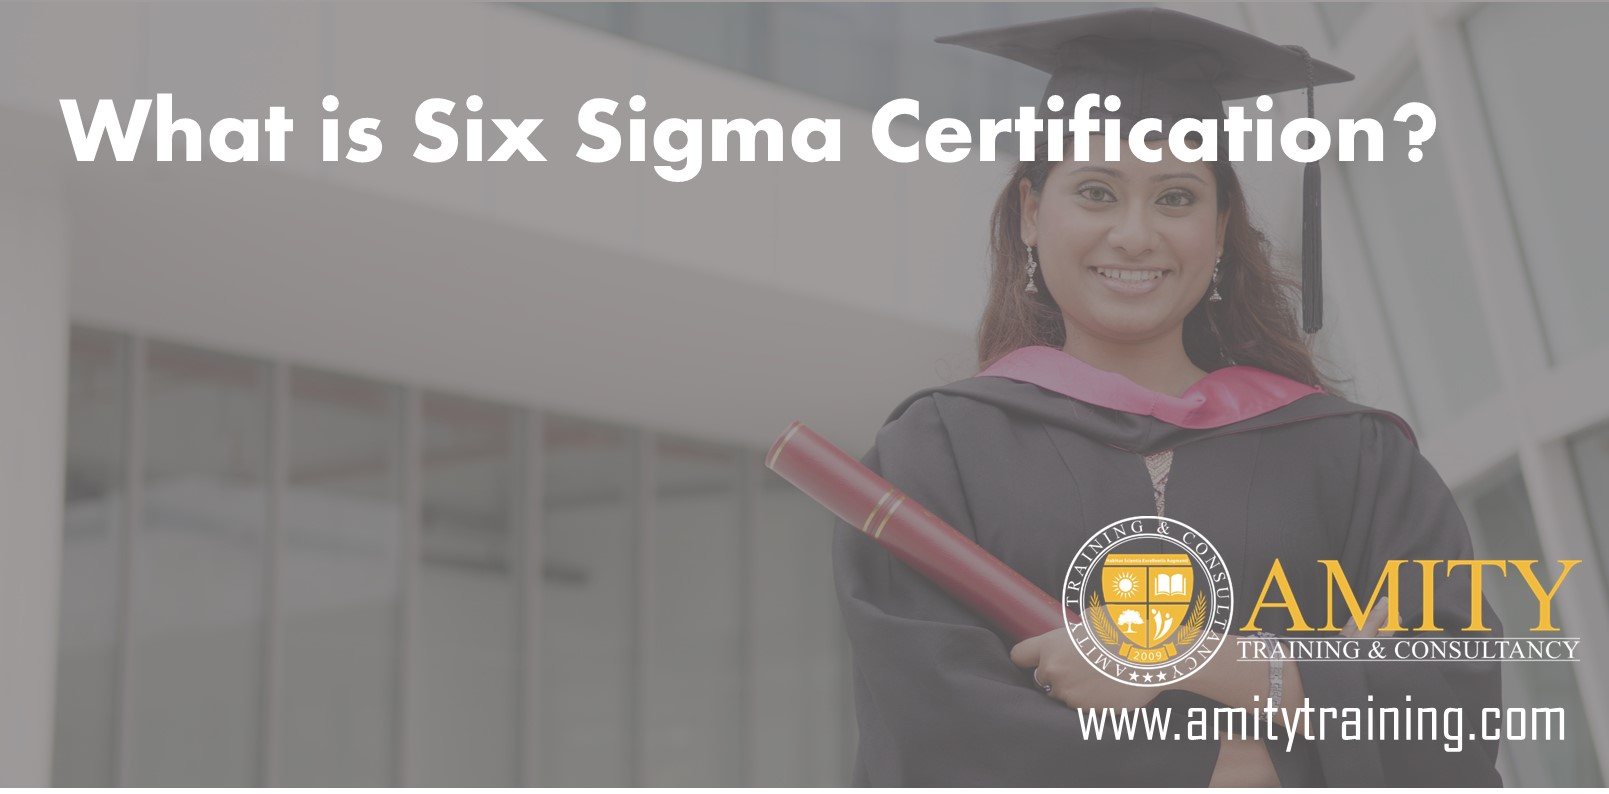 What is six sigma certification how to get six sigma certified xflitez Choice Image